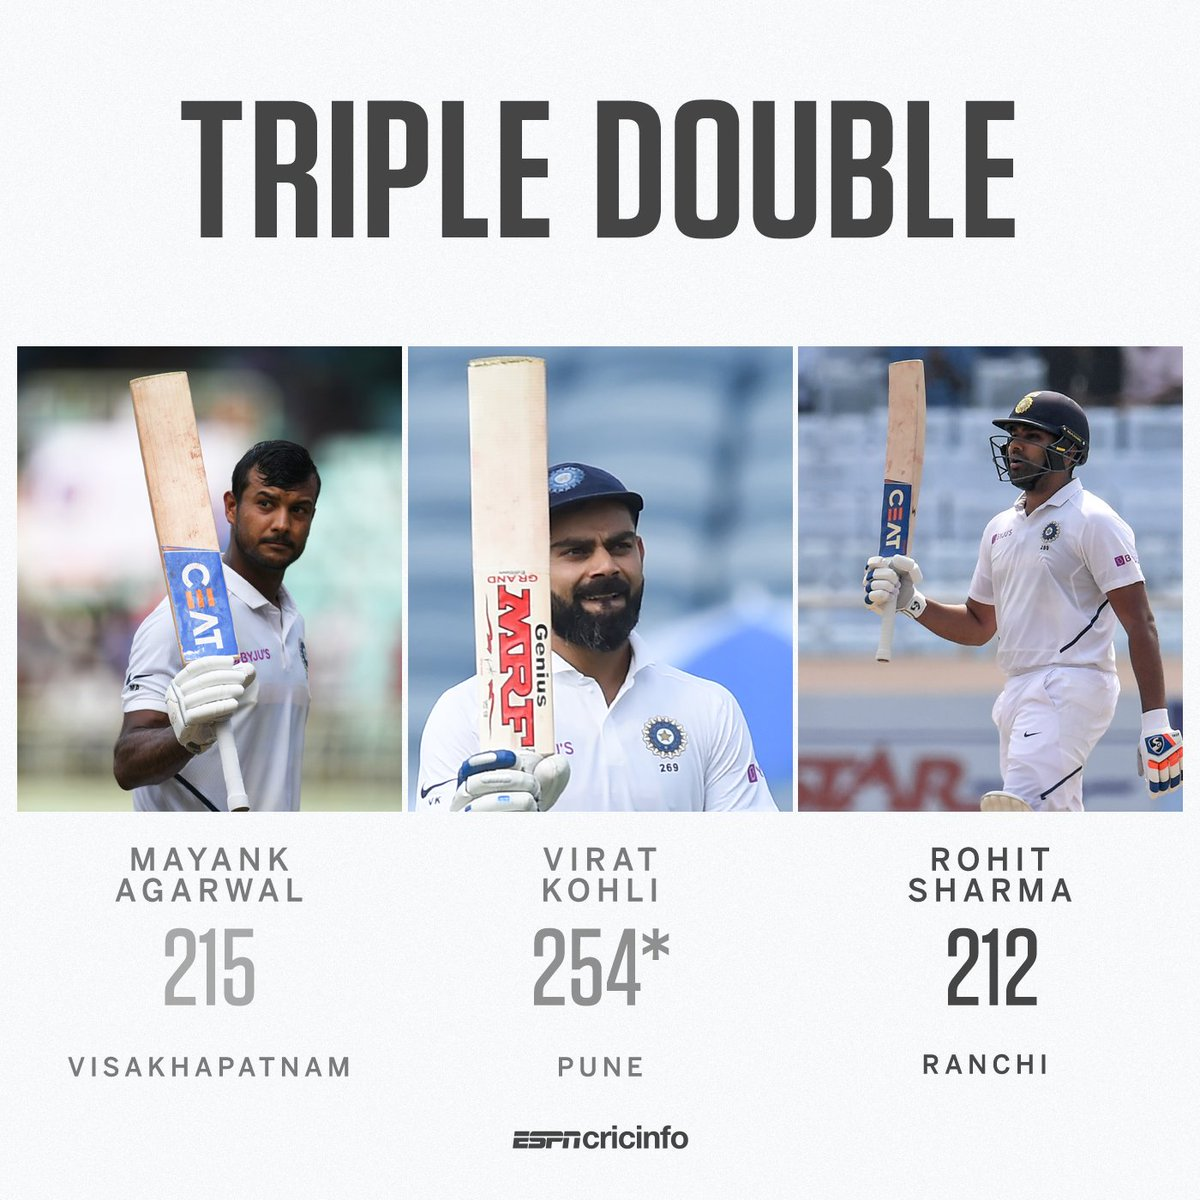 Mayank, Virat, and now Rohit!This is the first time three Indian batsmen have scored a double century in the same Test series#INDvSA | http://es.pn/2019INDvSA3